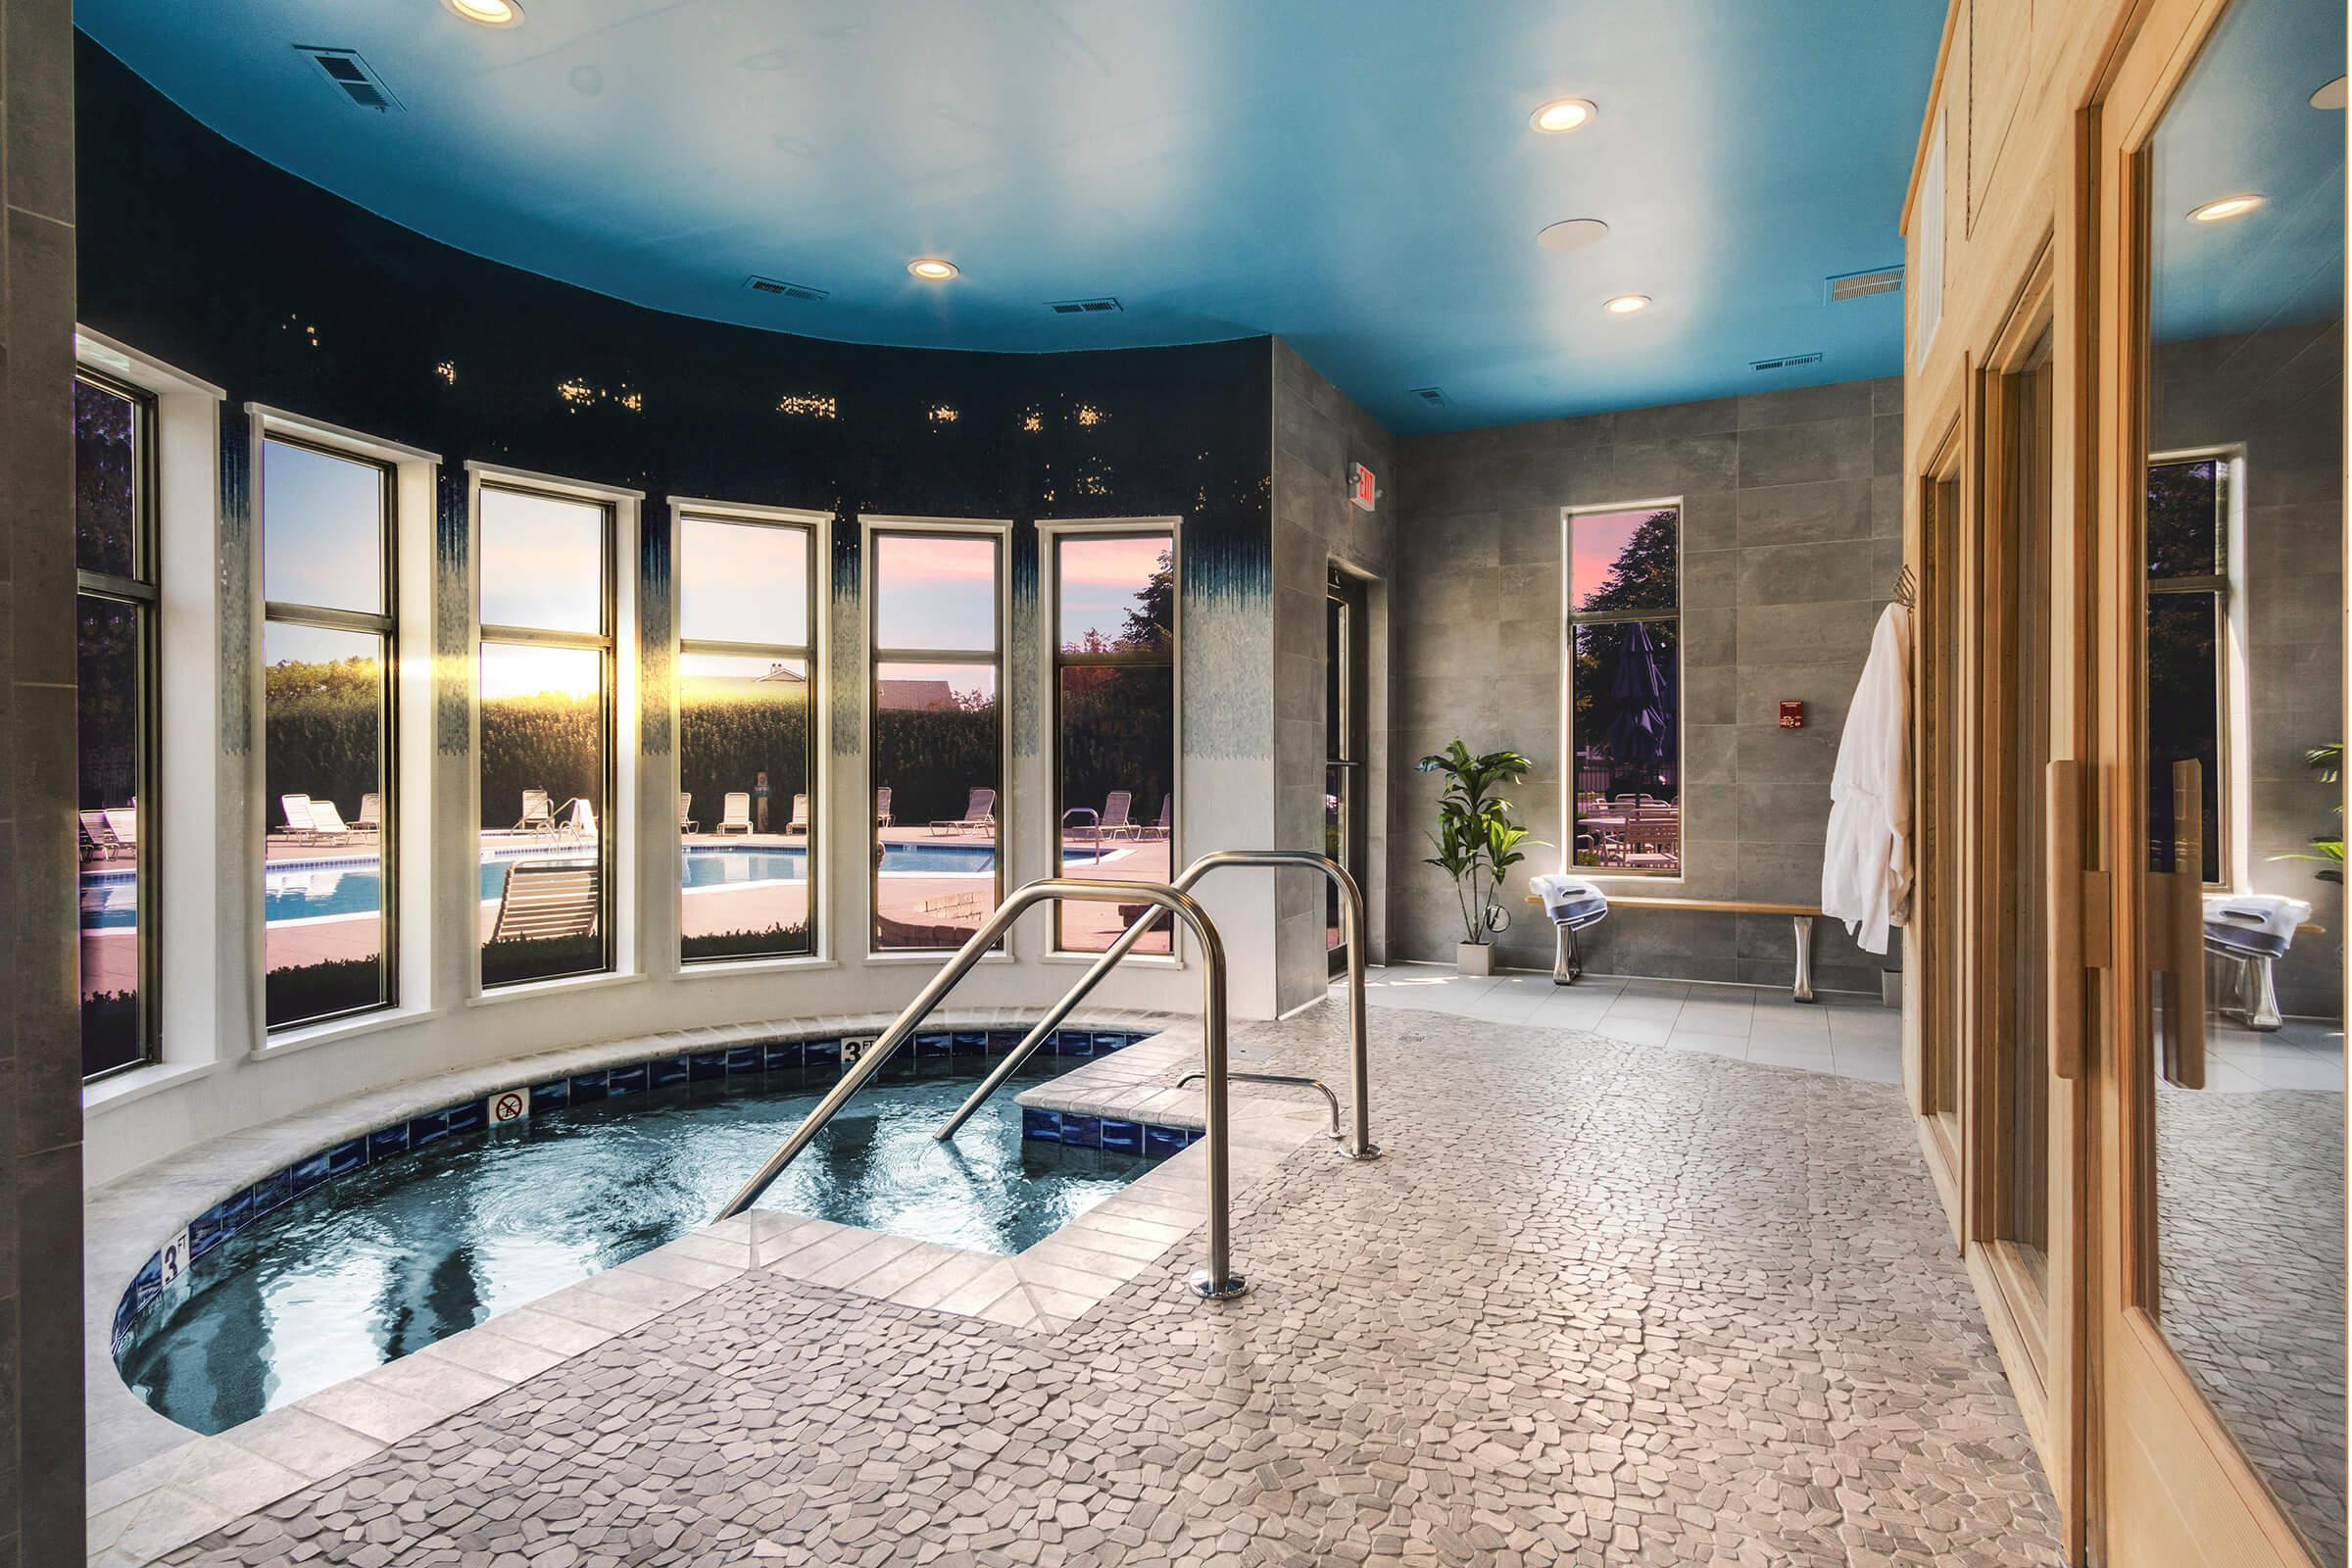 a room with a large pool of water